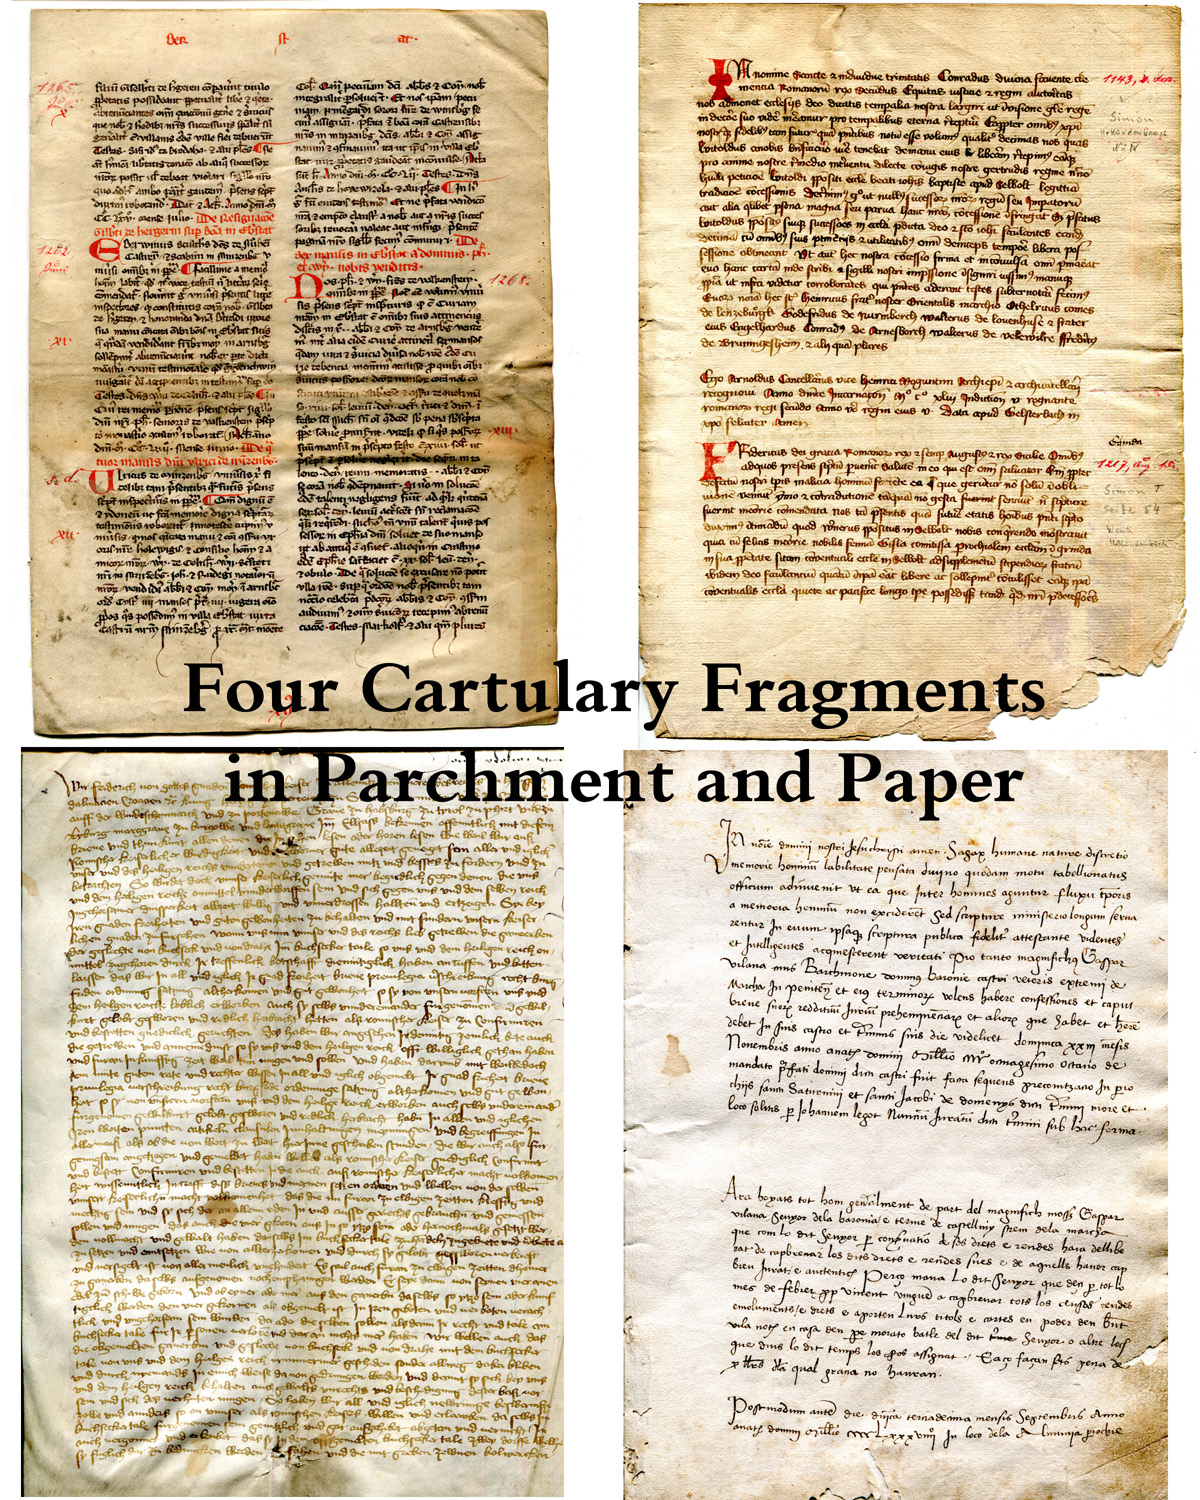 Title Page for the Paper by David Sorenson in the Session Sponsored by the Research Group on Manuscript Evidence at the International Congress on Medieval Studies in May 2016. The images represent pages in Cartularies respectively from from Arnsberg, Selbold, Buchsechertal, and Vallfort, in the order presented in the paper. Reproduced by permission.